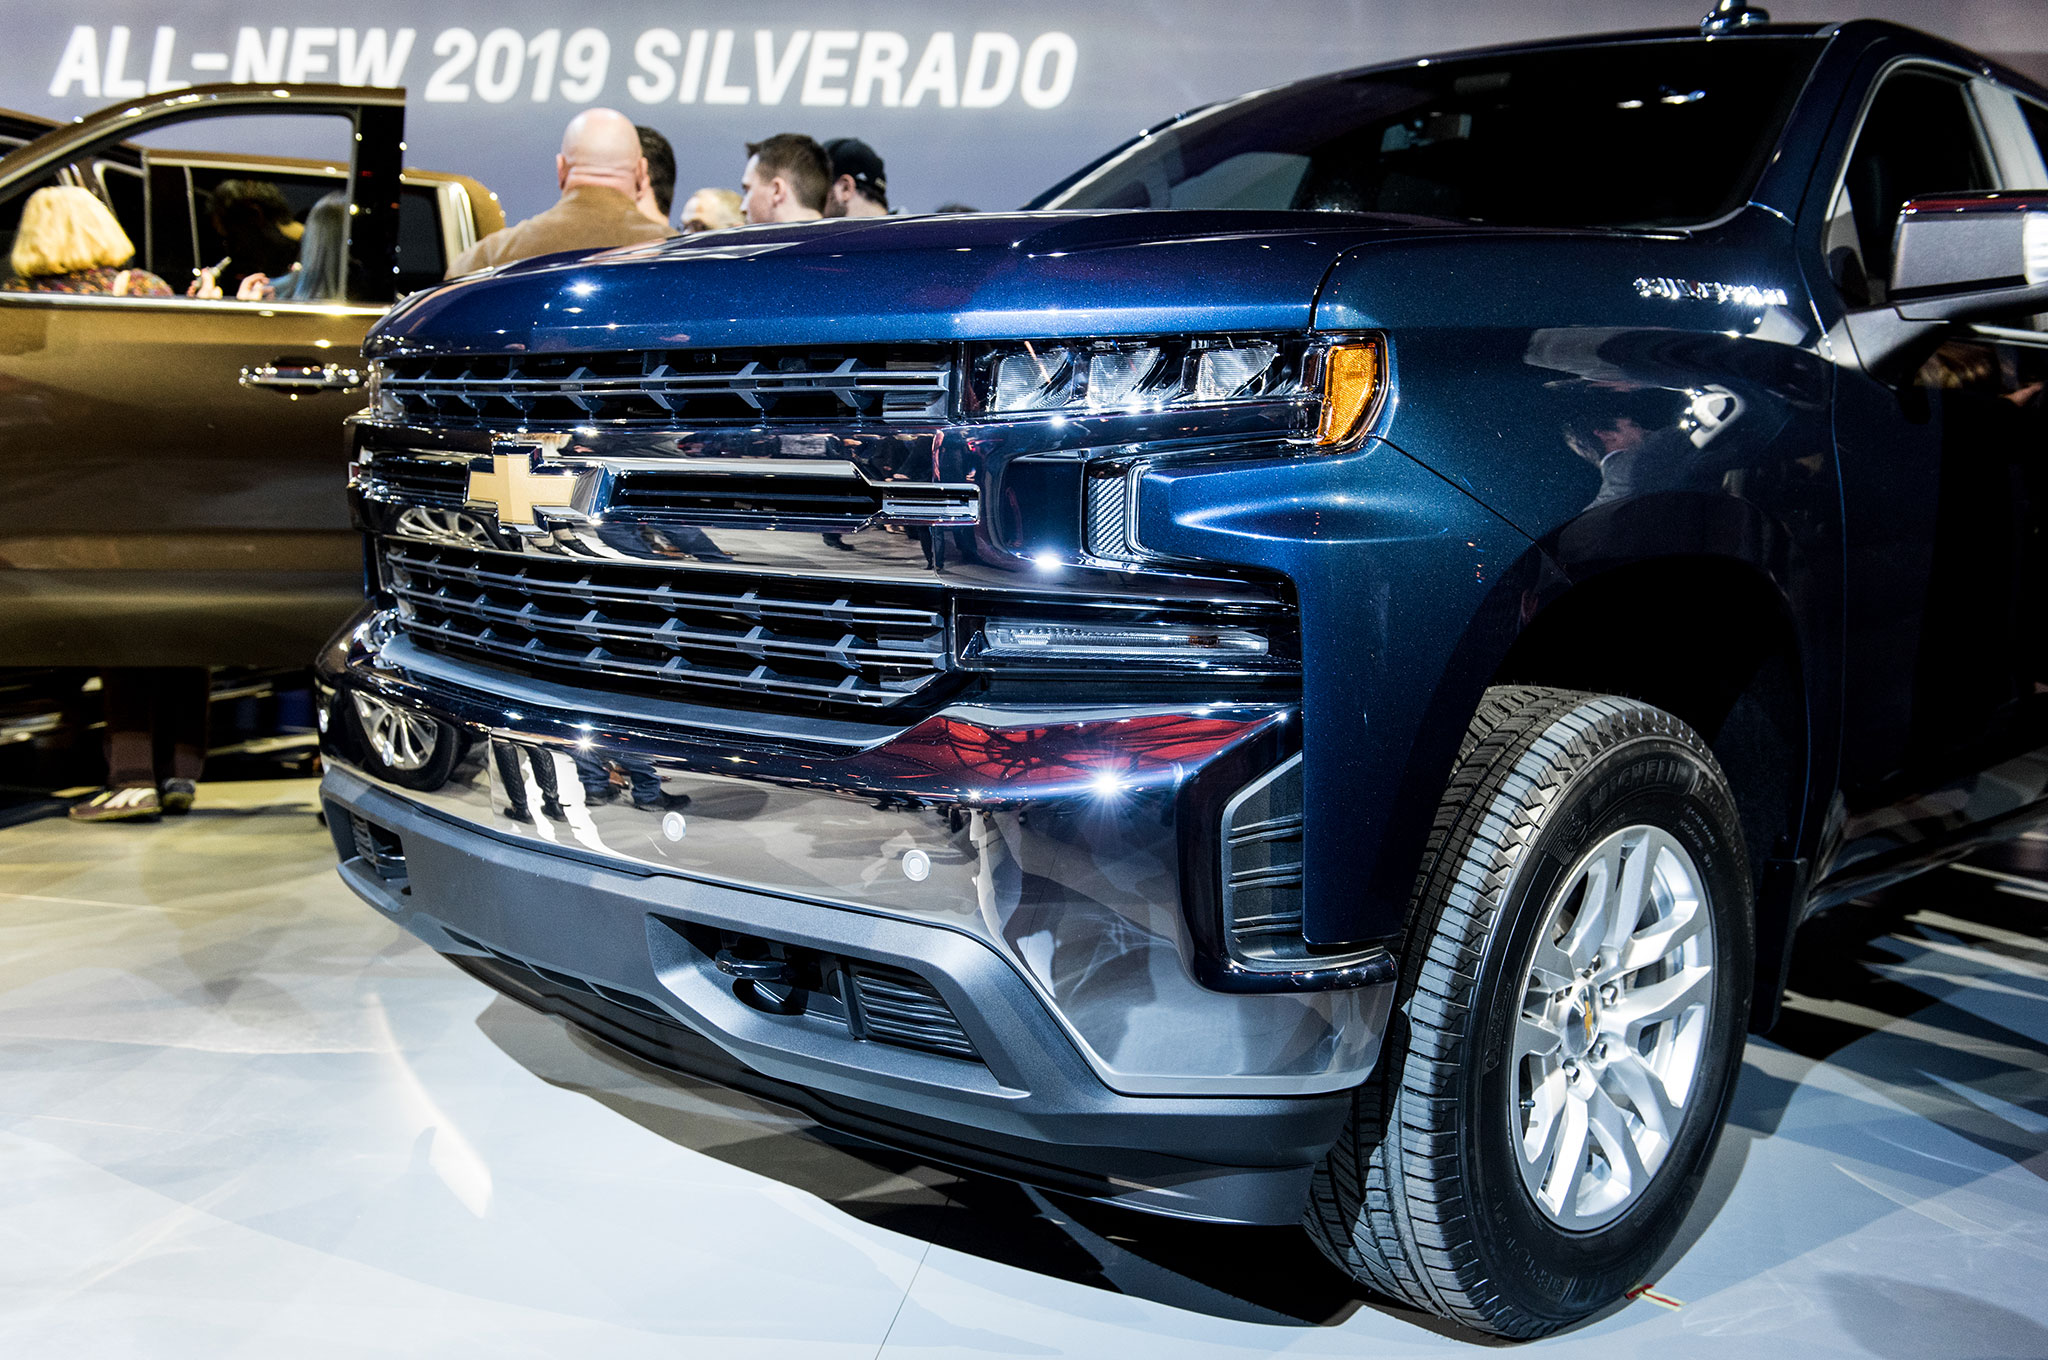 12 Cool Things About the 2019 Chevrolet Silverado ...